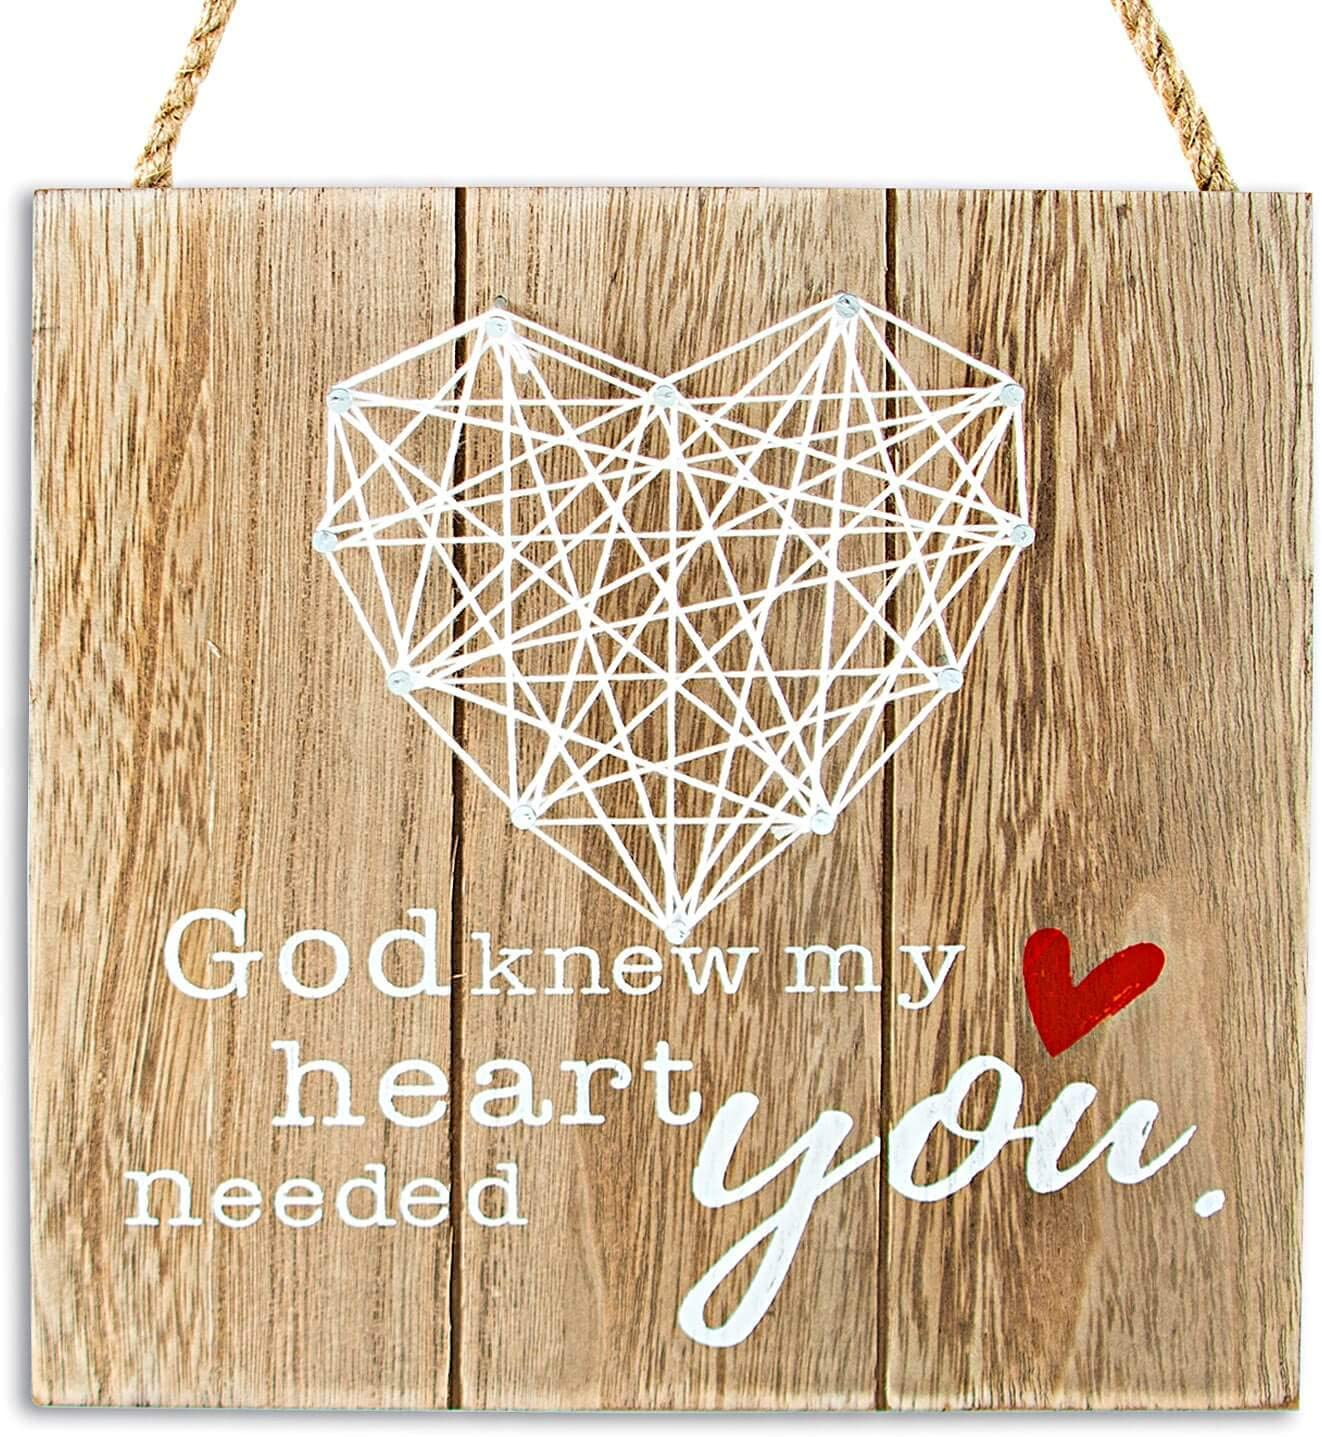 VILIGHT Rustic Farmhouse Wall Decor Heart Sign - Gifts for Boyfriend Girlfriend Husband Wife and Best Friend - My Heart Needed You Crafts for Him Her - 7.5x7.5 Inches